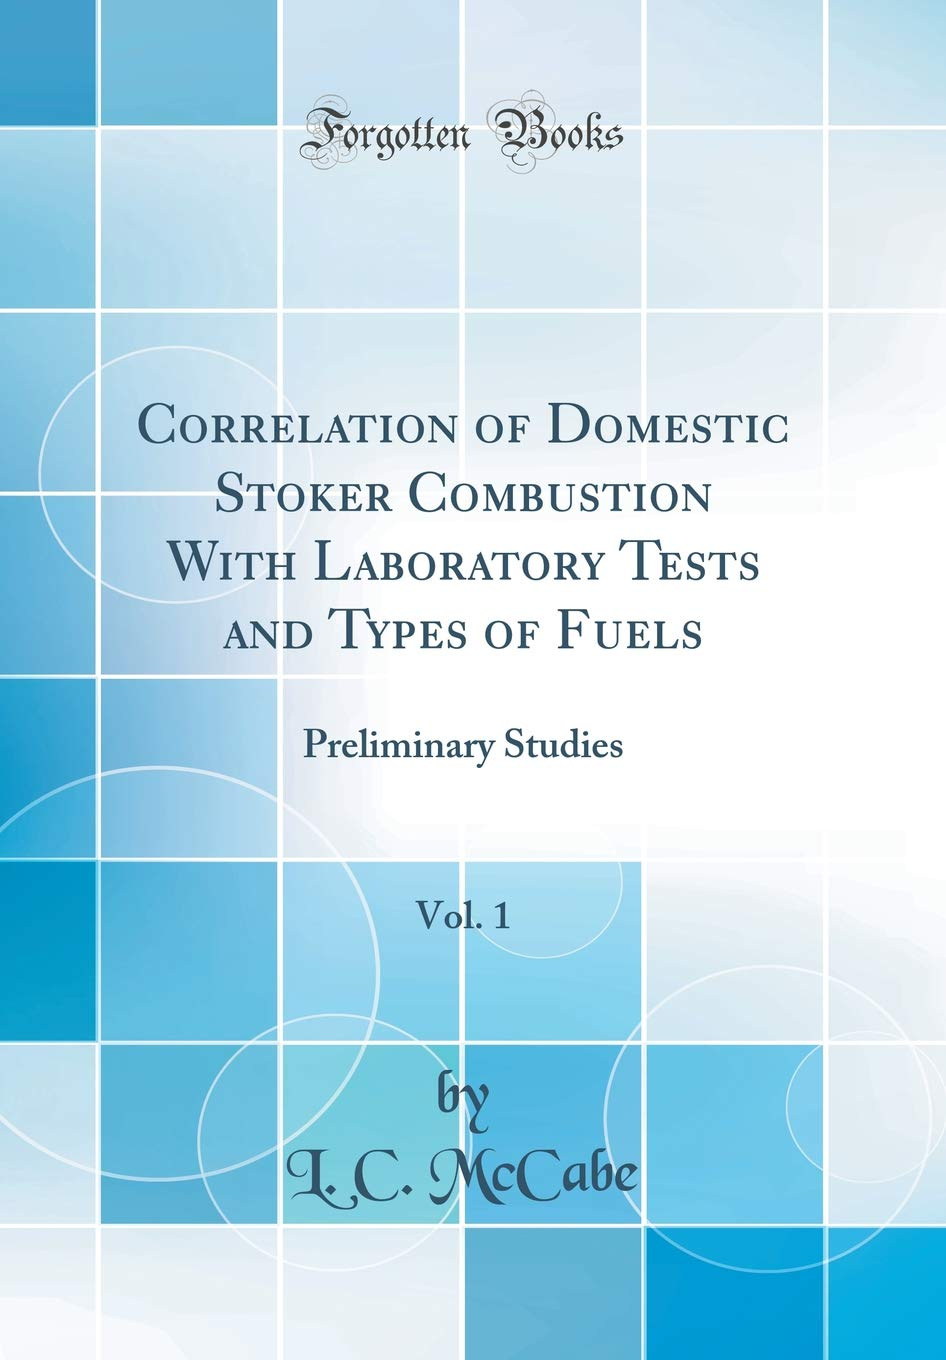 Correlation of Domestic Stoker Combustion with Laboratory